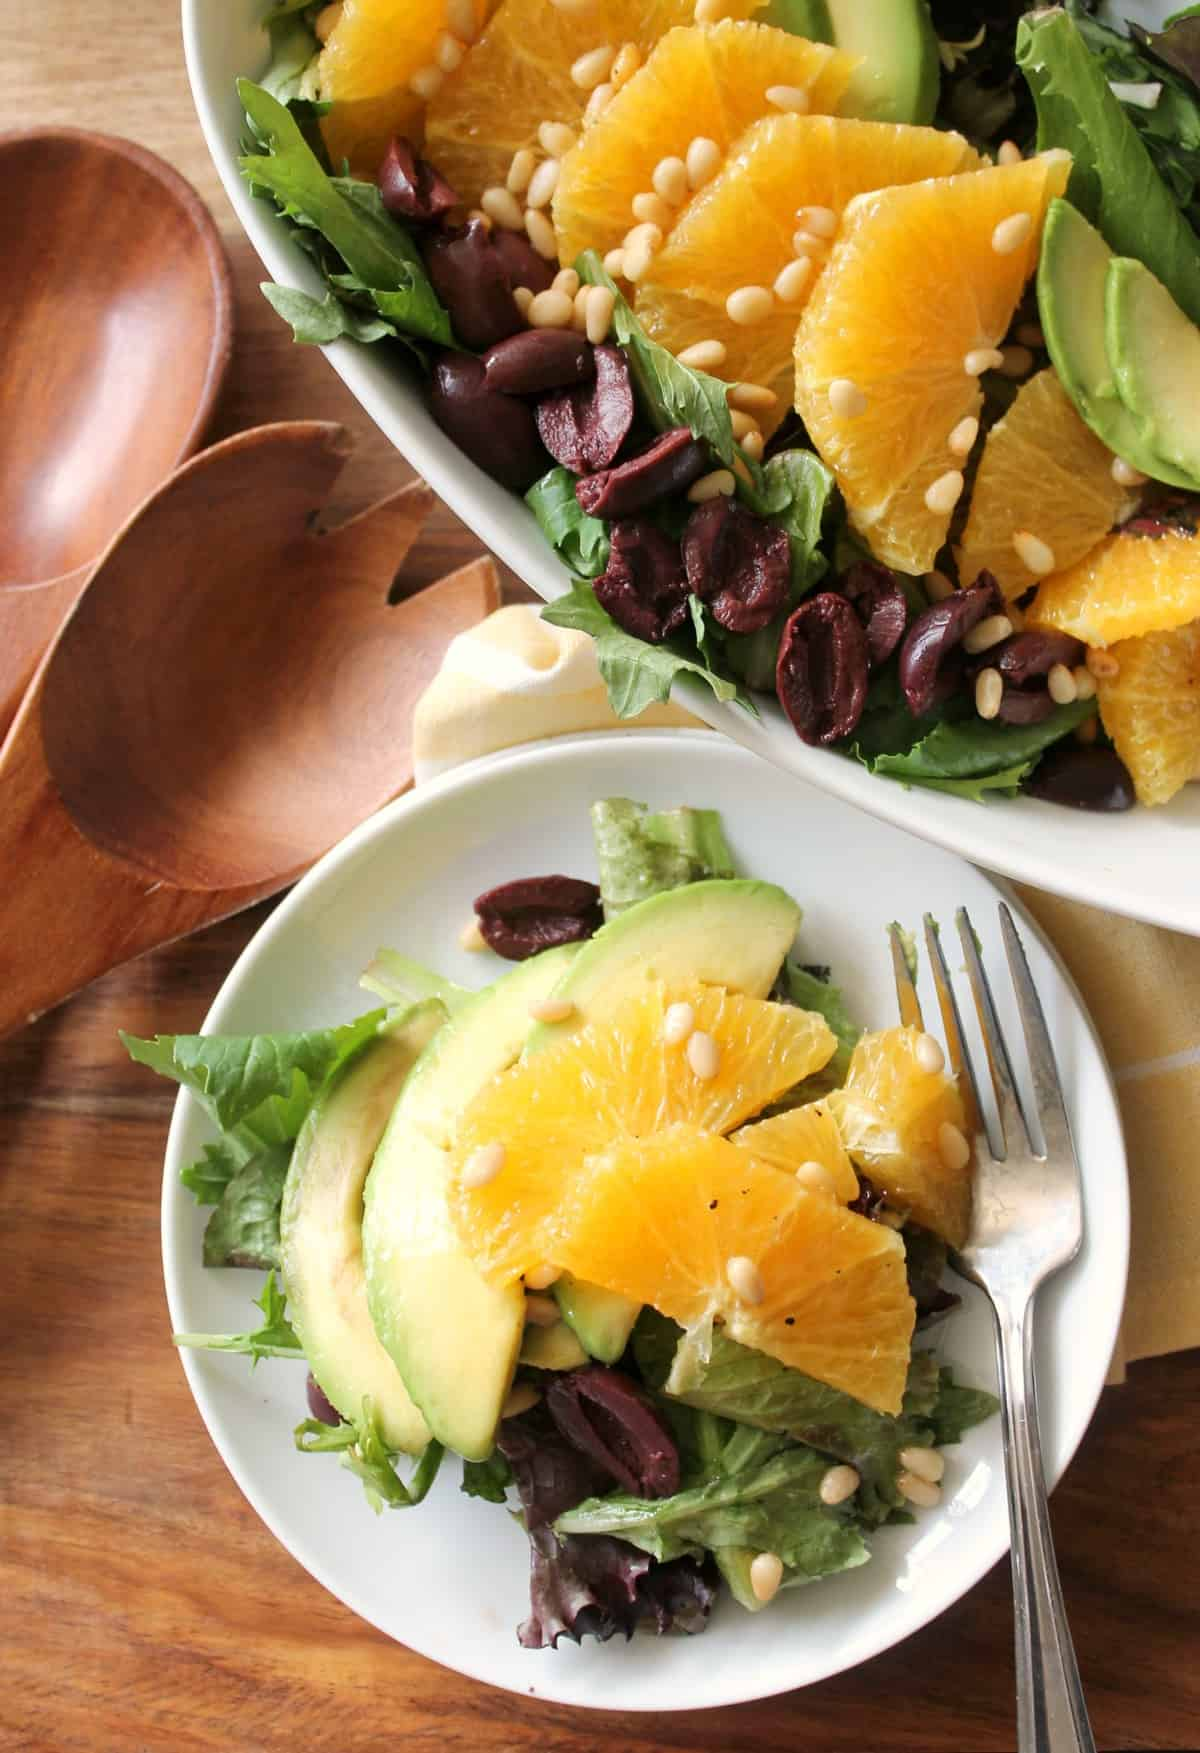 Orange-Avocado Salad